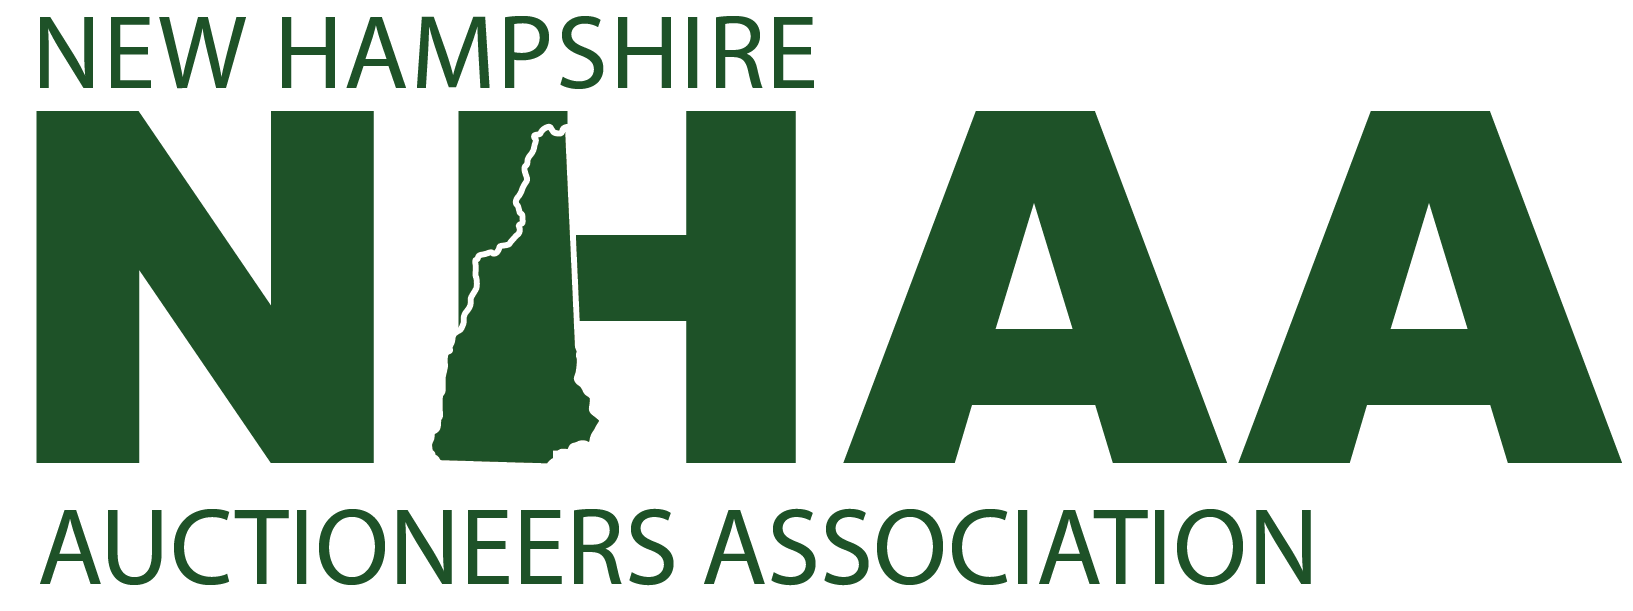 New Hampshire Auctioneers Association